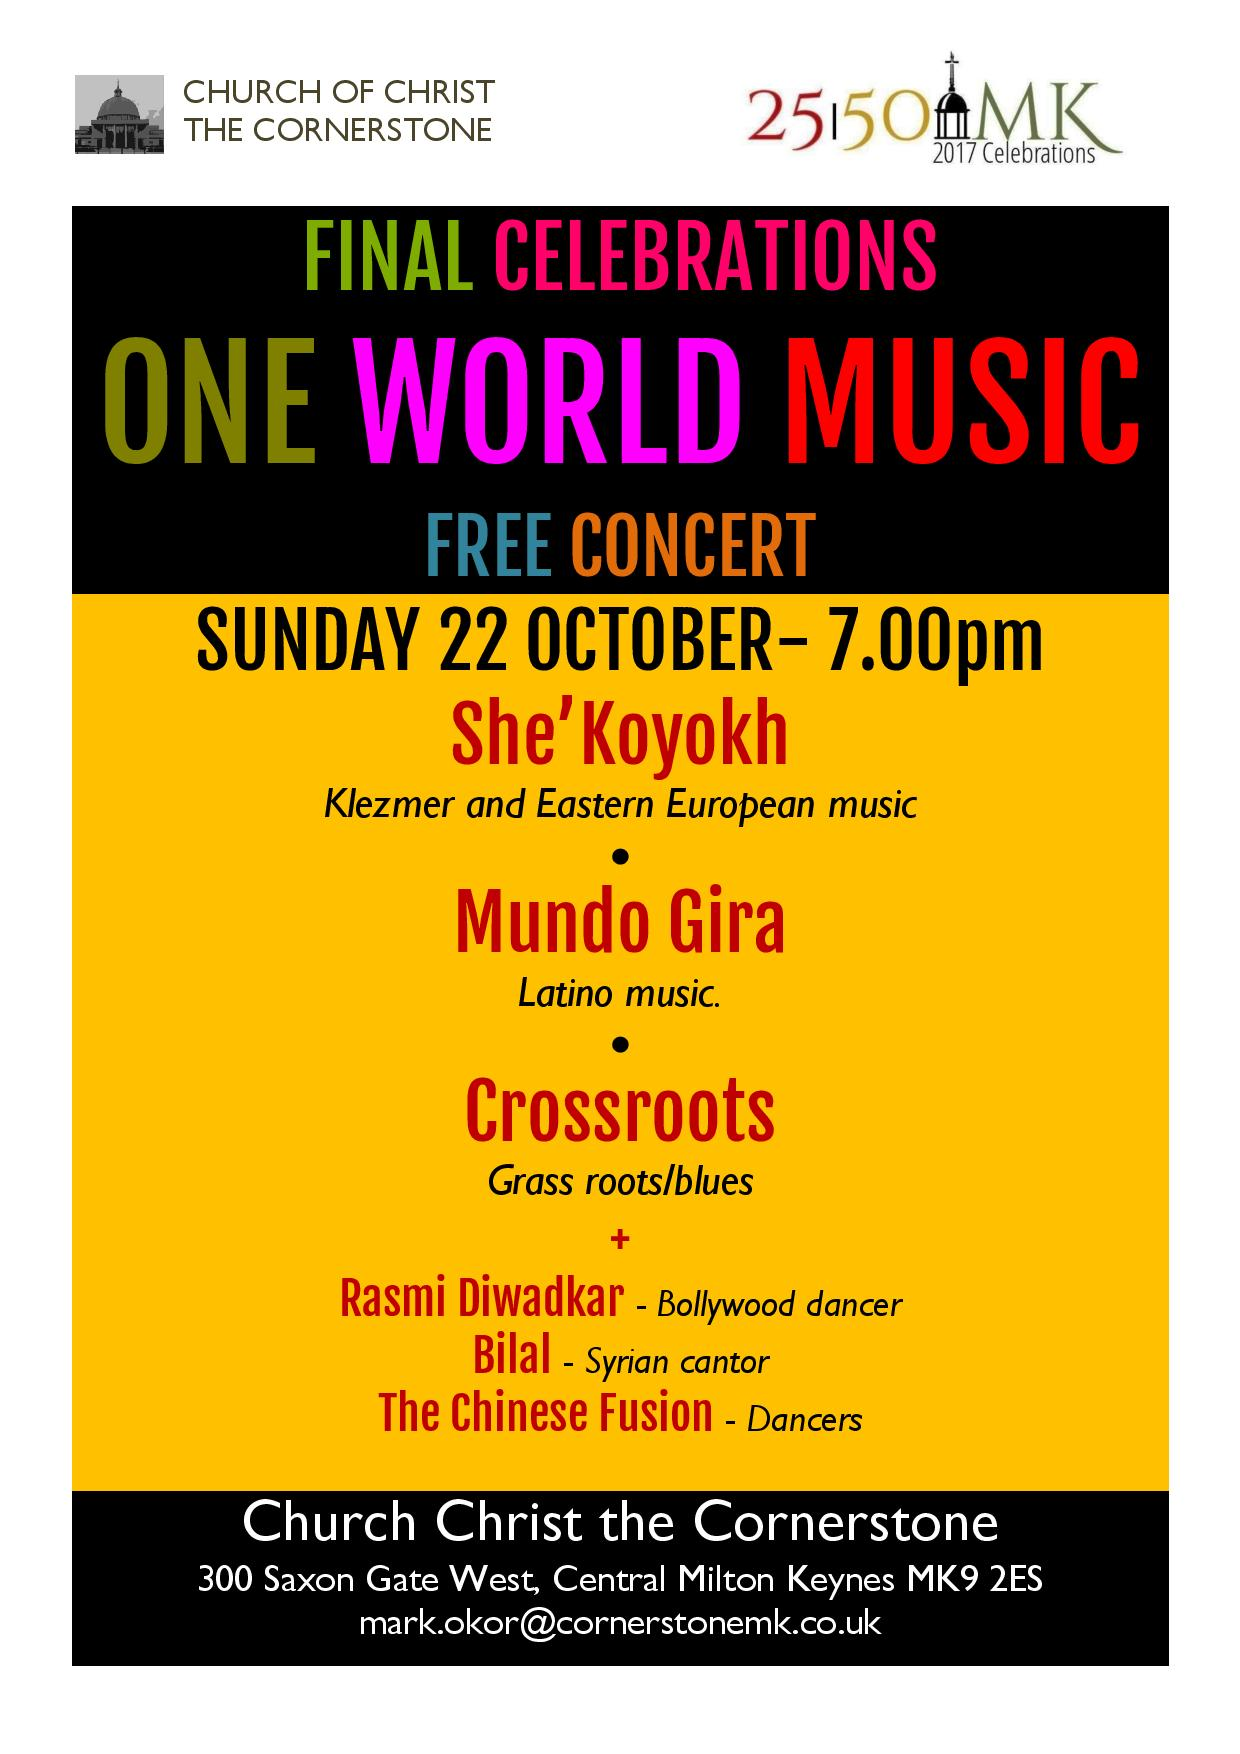 One World Music Concert at Christ the Cornerstone